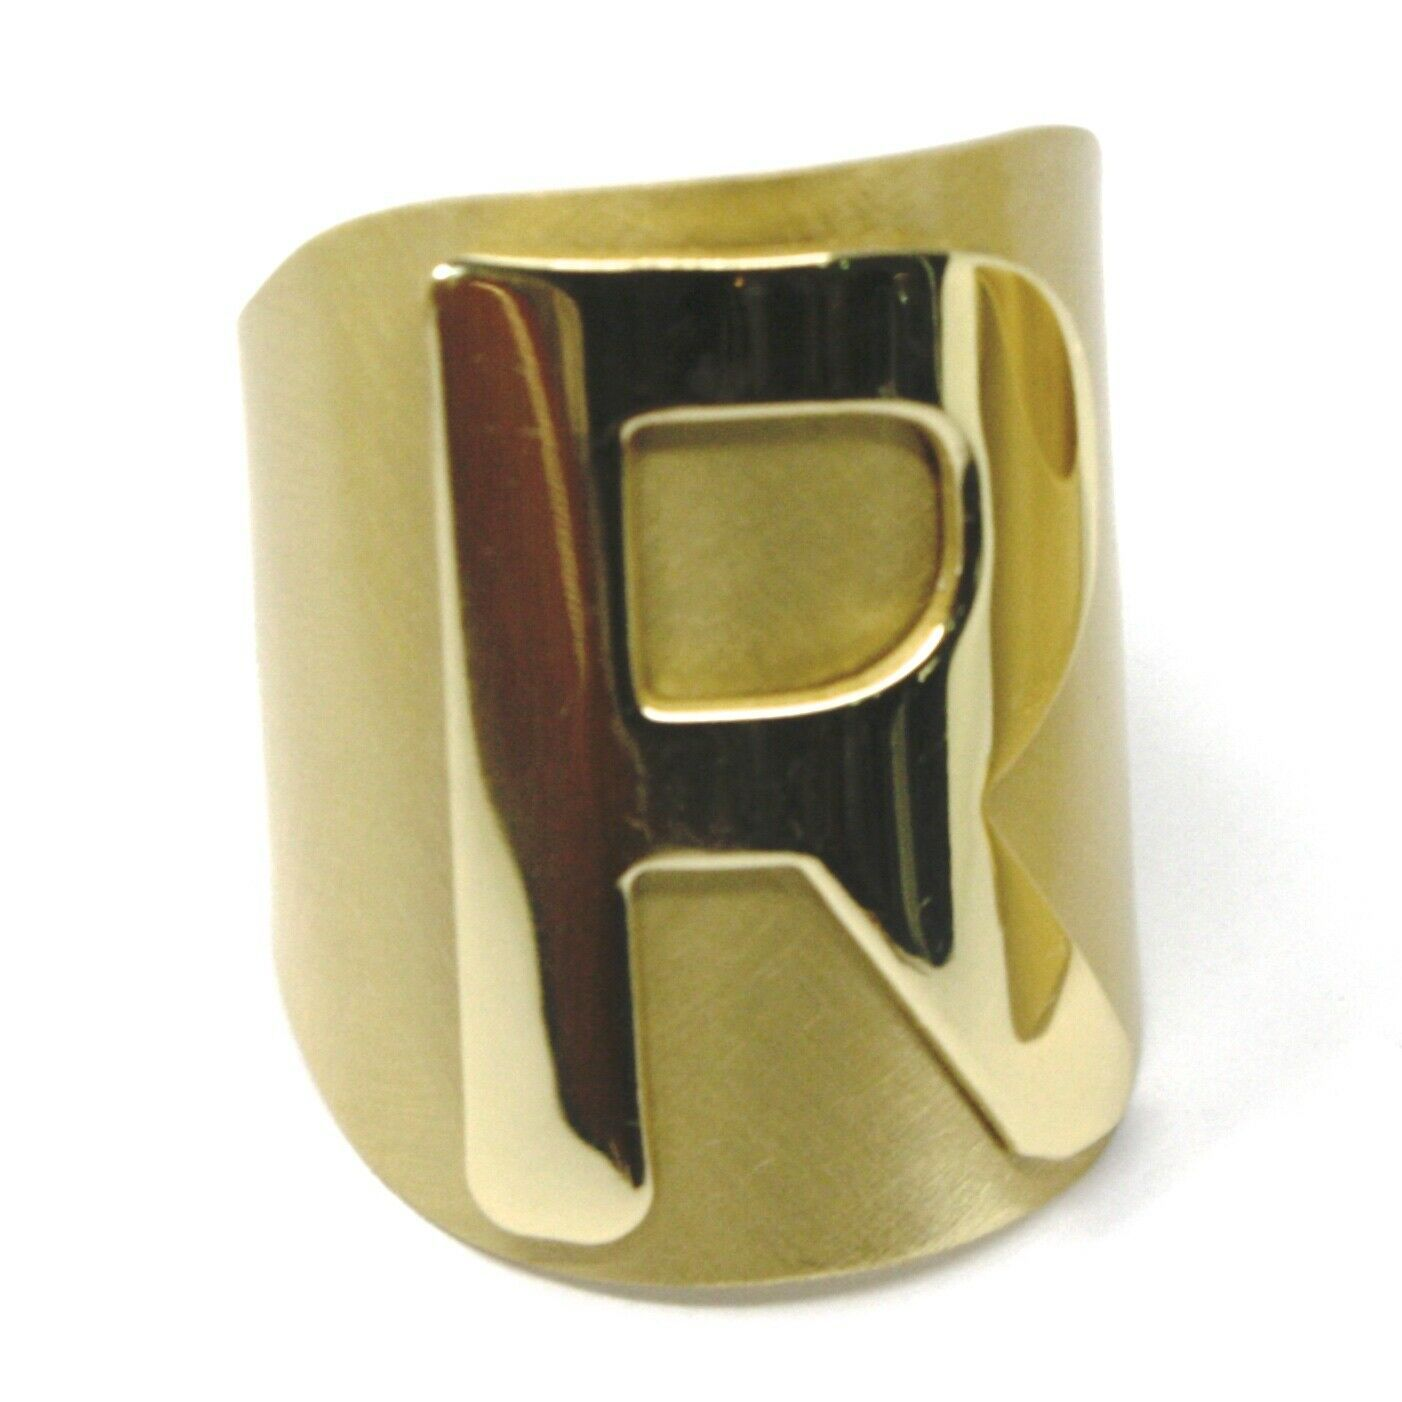 SOLID 925 STERLING SILVER BAND RING, BIG LETTER R, YELLOW SATIN FINISH, SIZABLE